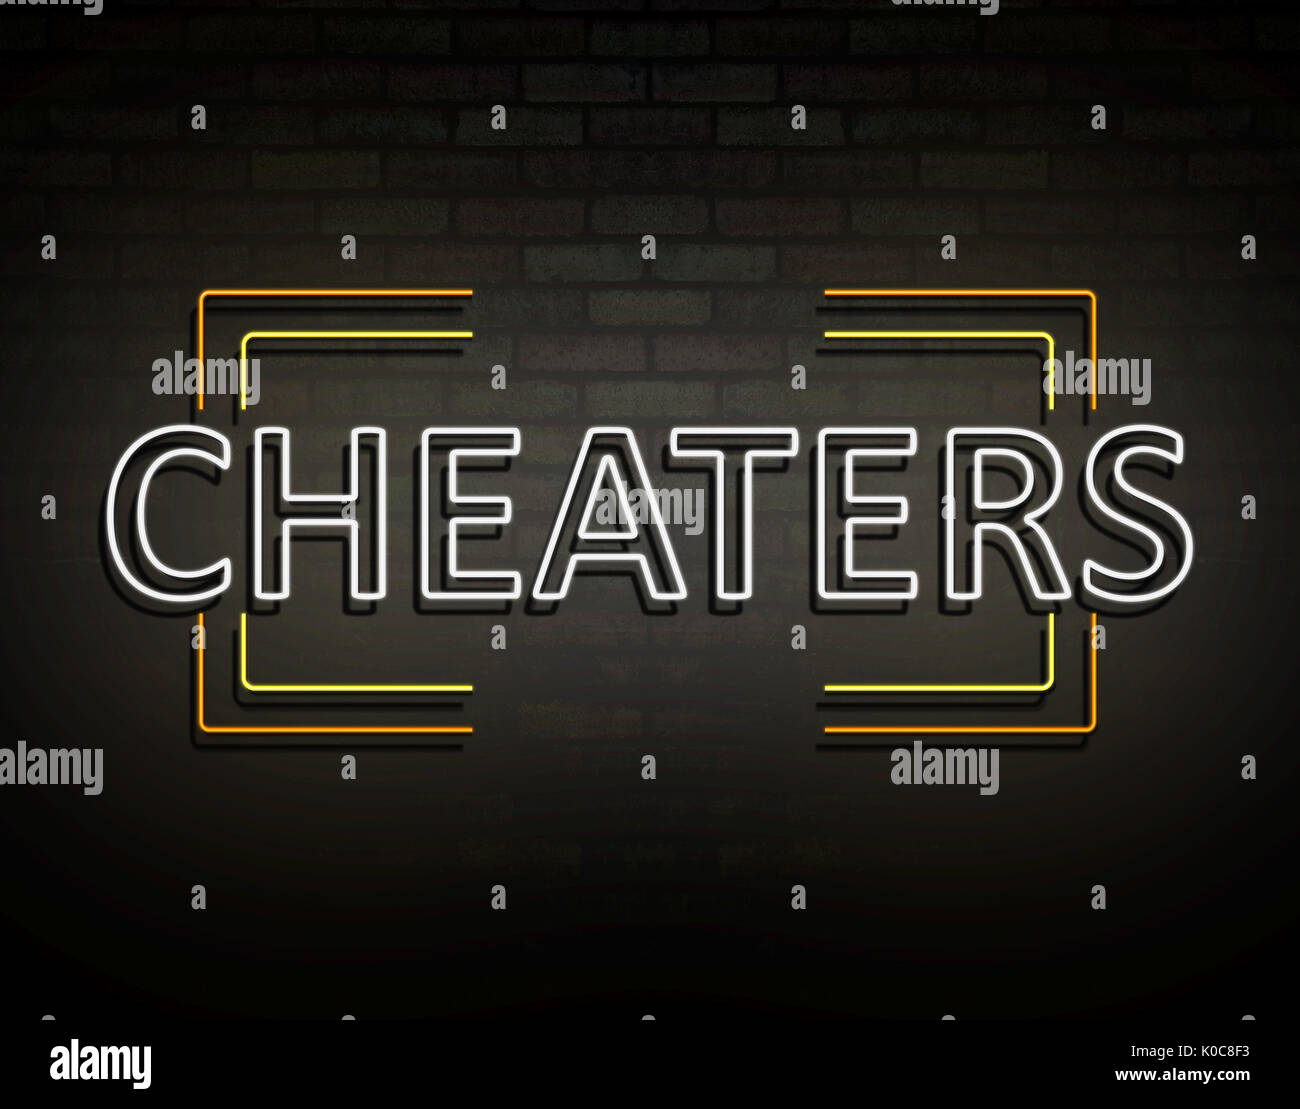 3d Illustration depicting an illuminated neon sign with a cheaters concept. - Stock Image